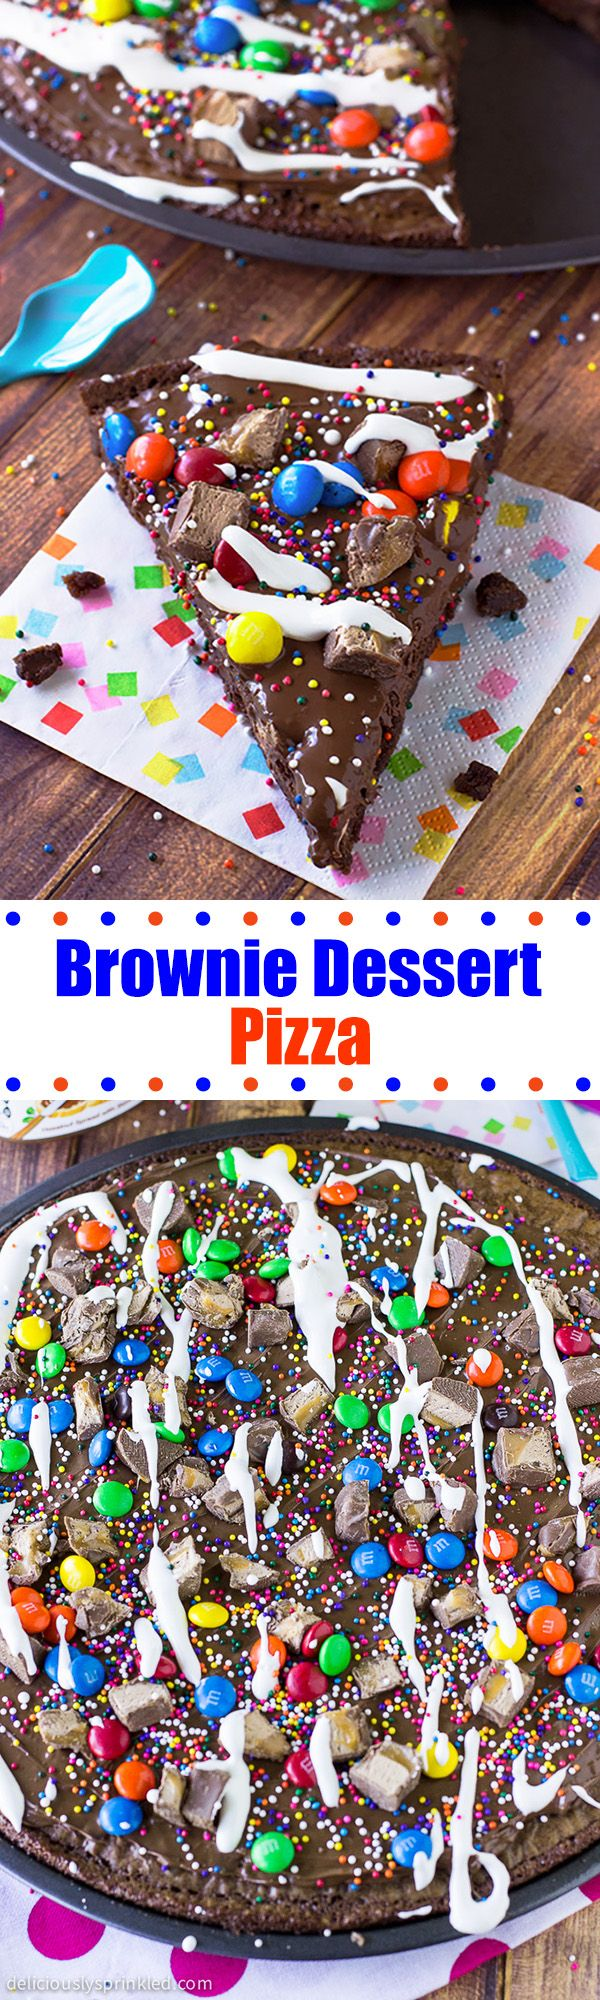 Brownie Dessert Pizza-an easy to make brownie dessert pizza topped with Nutella, candies, and SPRINKLES!